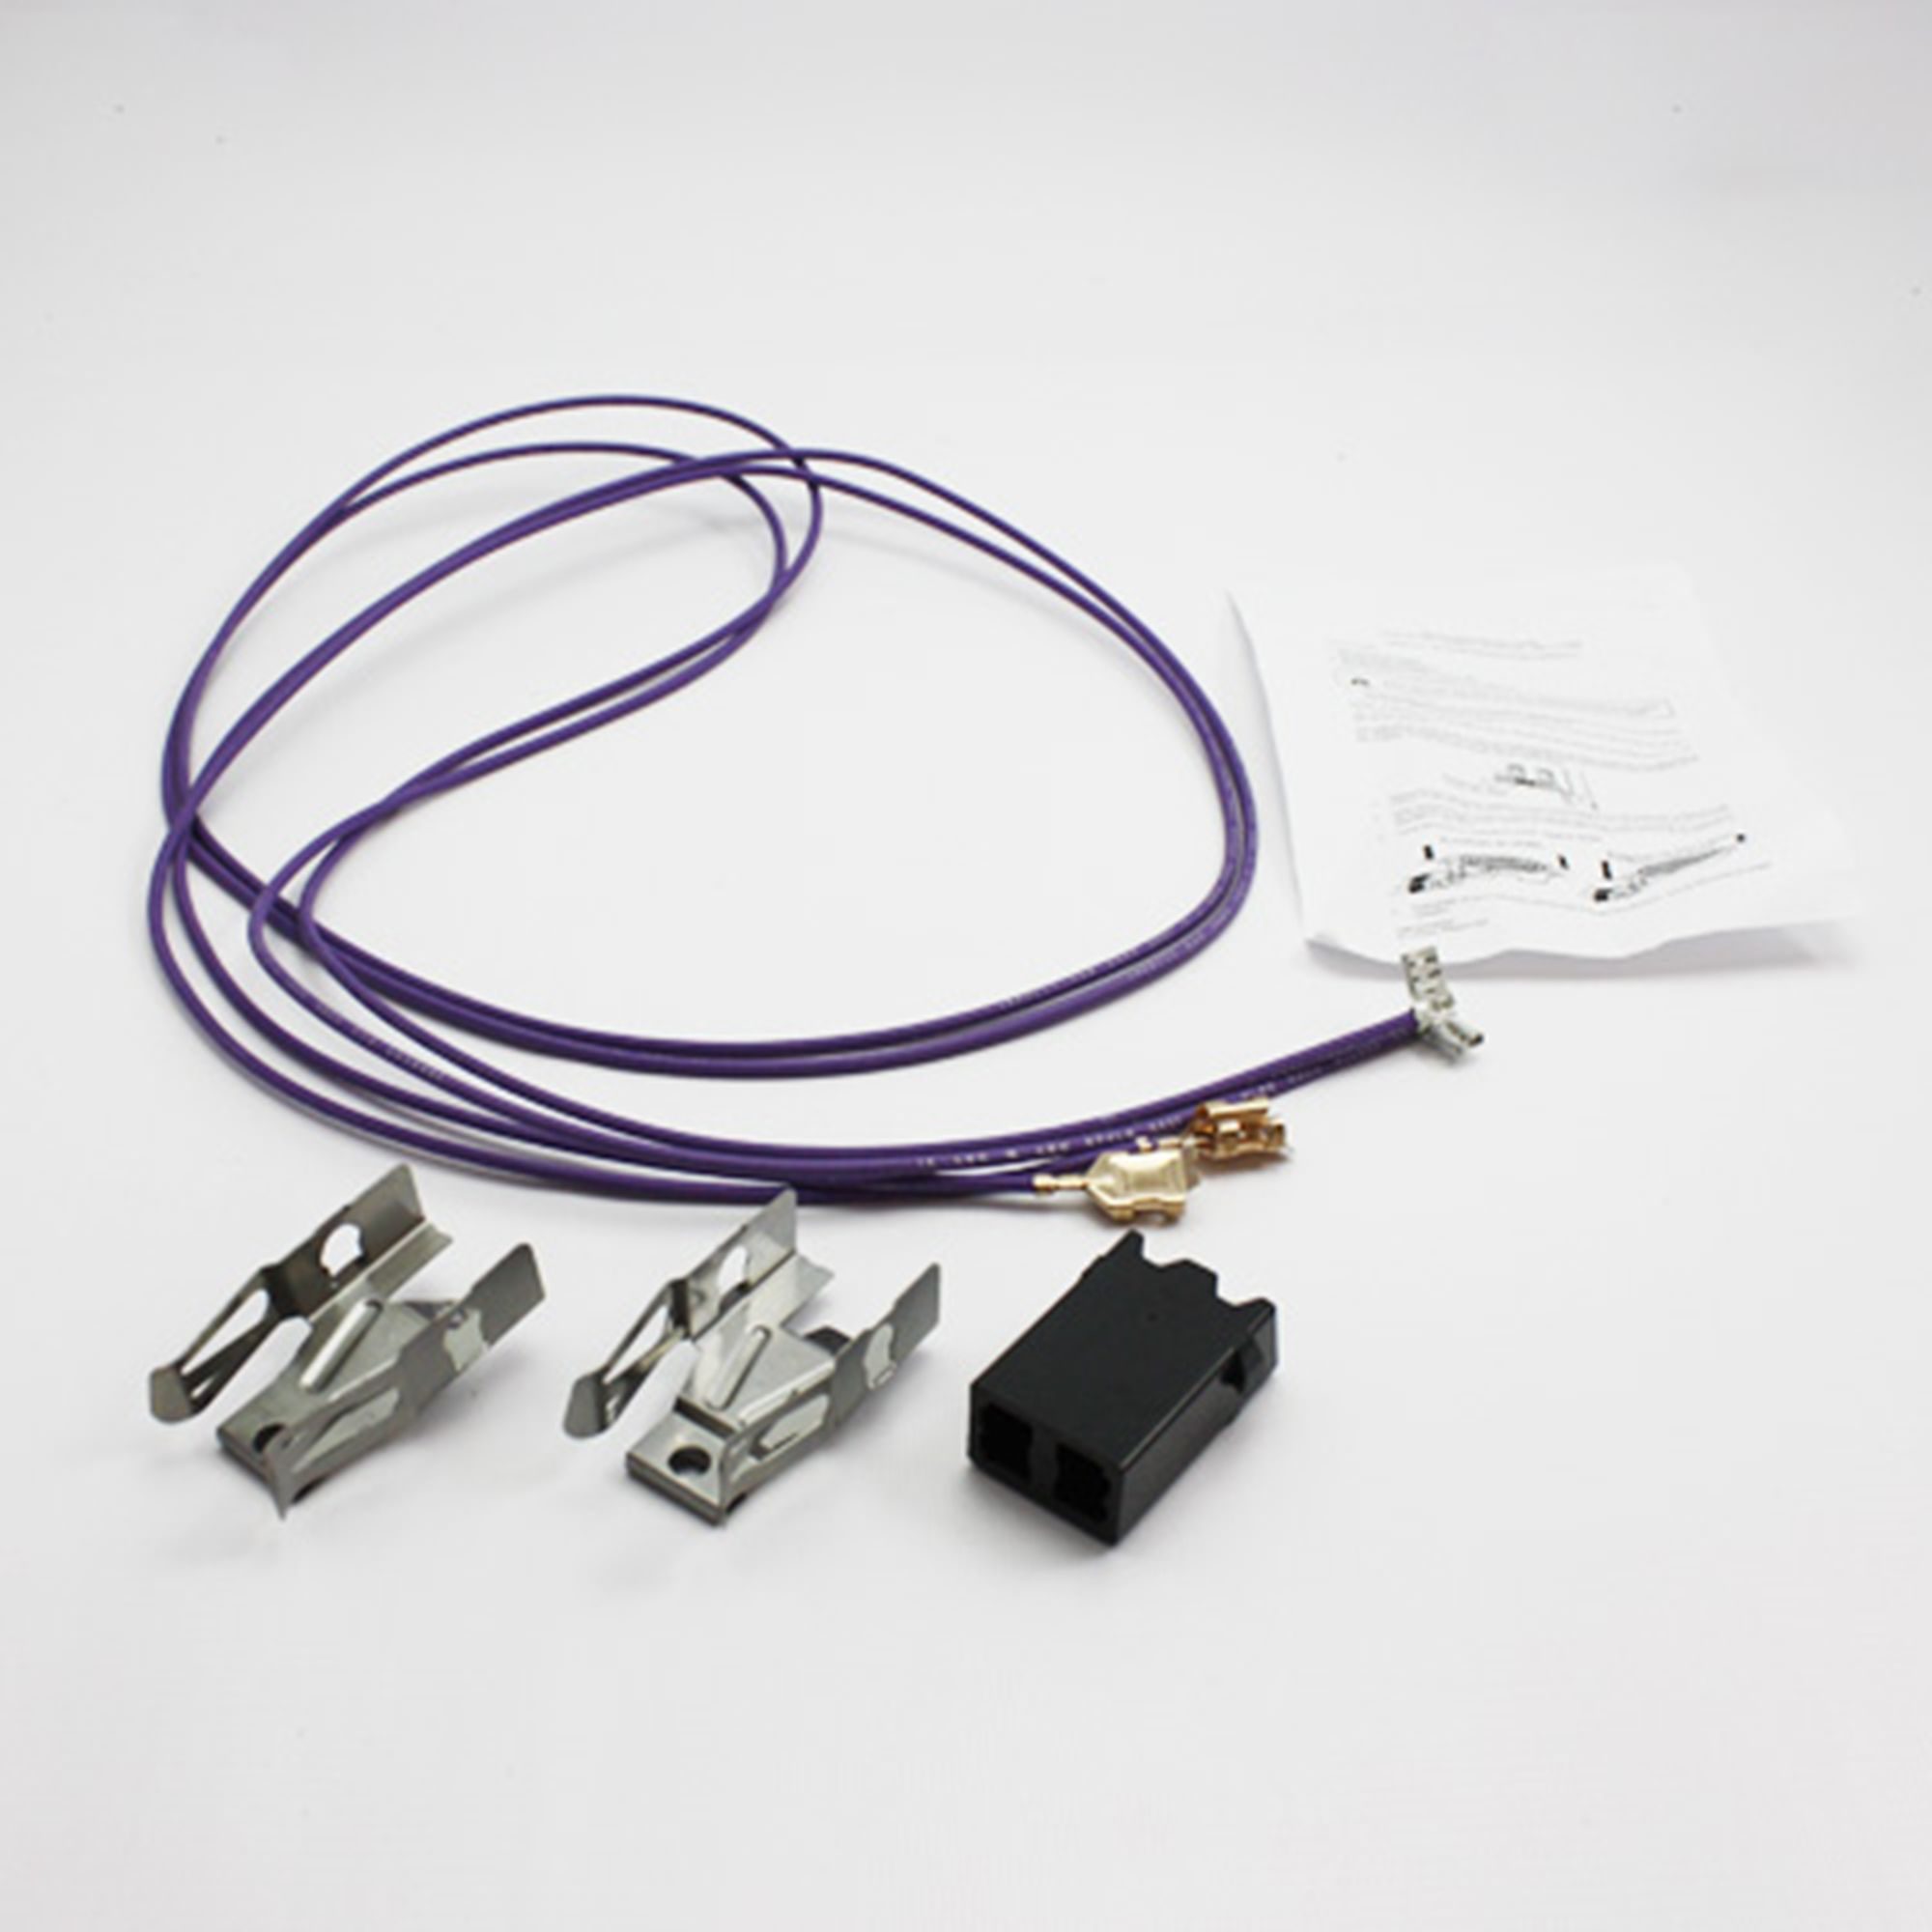 Wb17t10006 Ge Range Stove Element Receptacle And Wire Kit